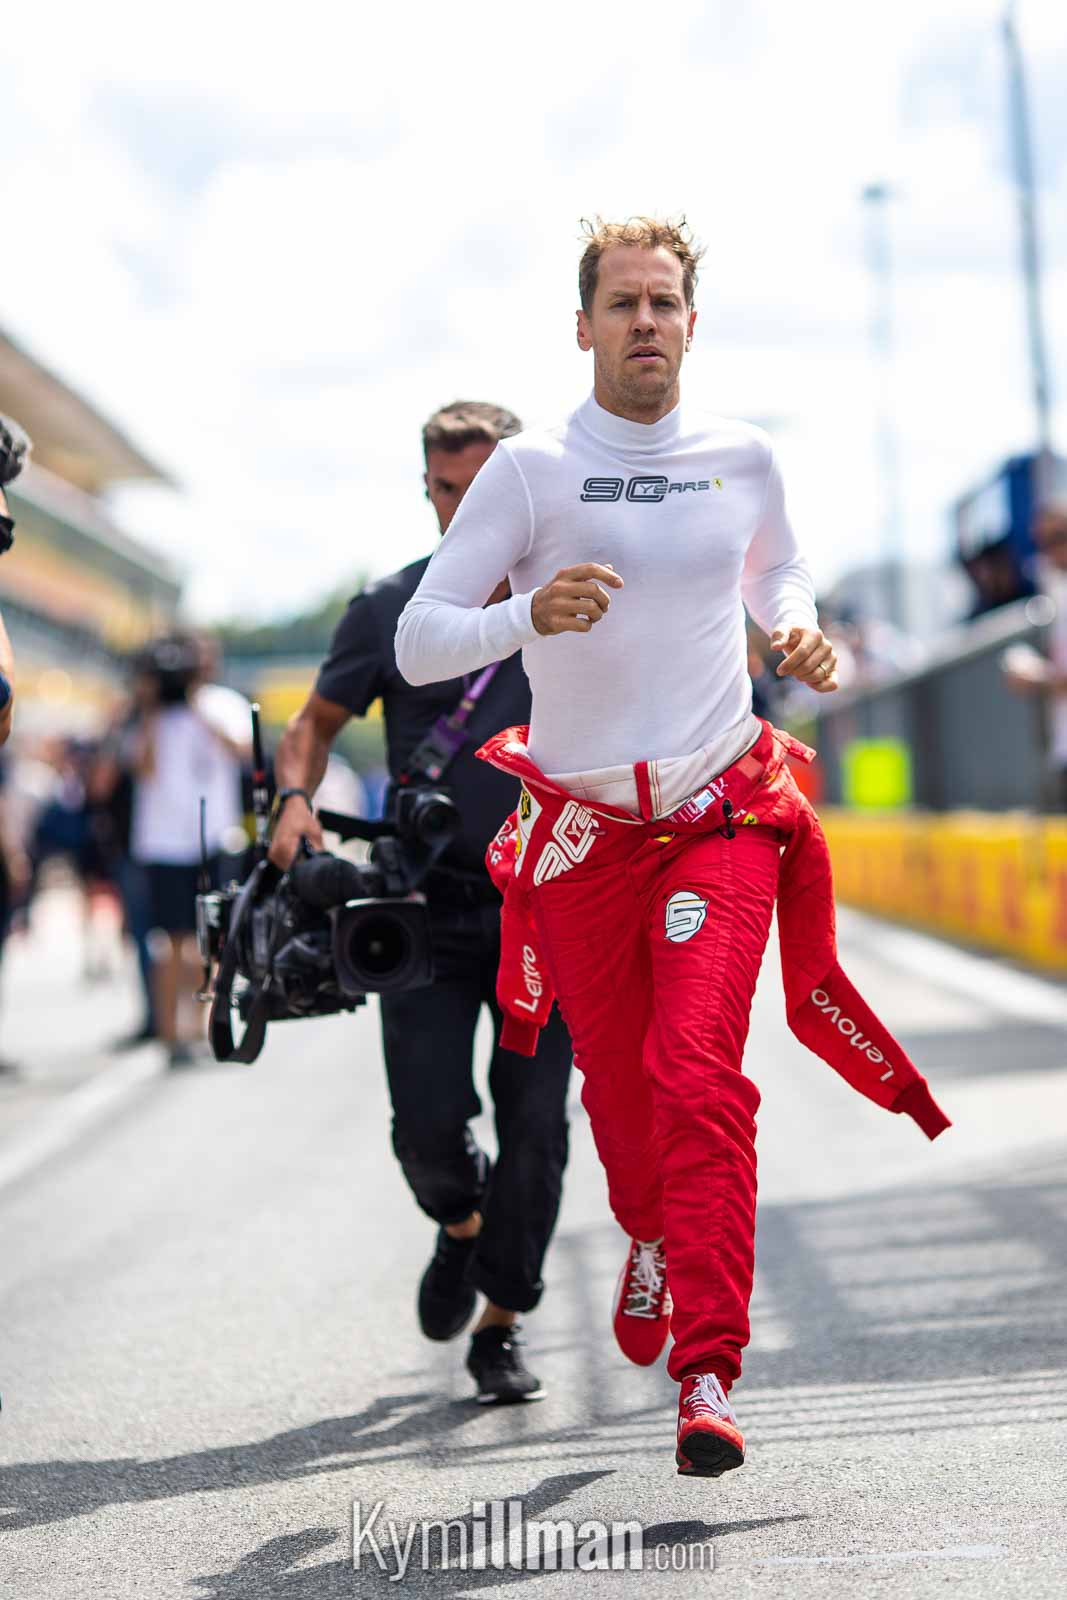 A Pall over Seb in Singapore?